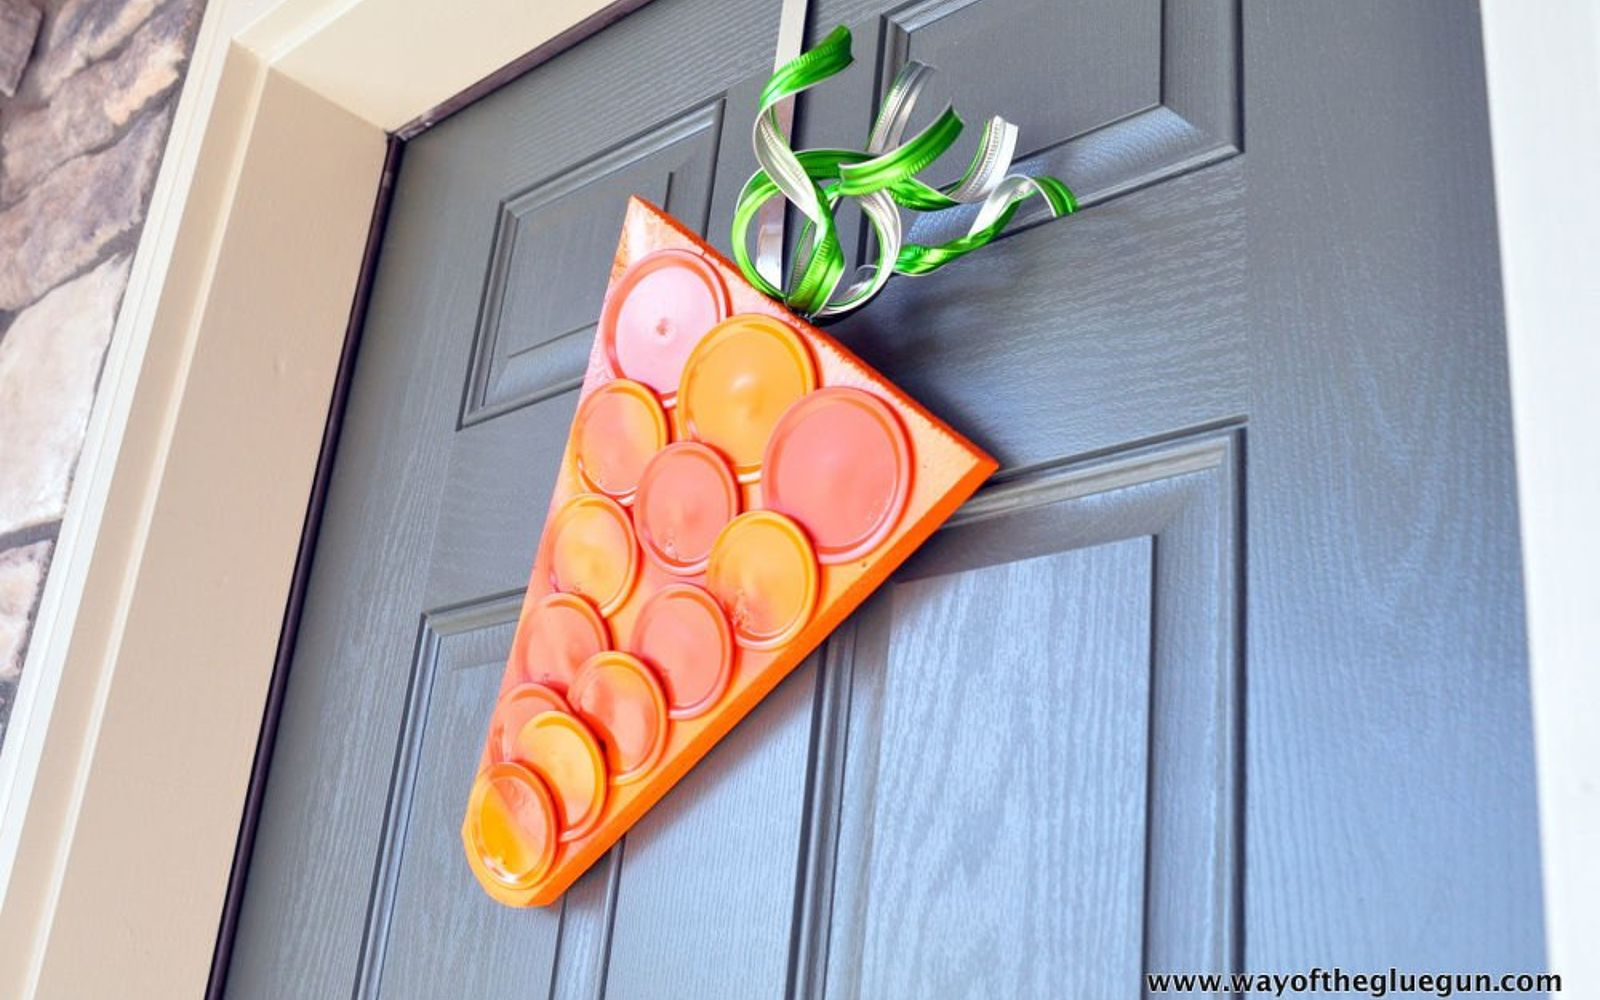 s 31 gorgeous spring wreaths that will make your neighbors smile, crafts, seasonal holiday decor, wreaths, Create a fun carrot hanger from canning lids